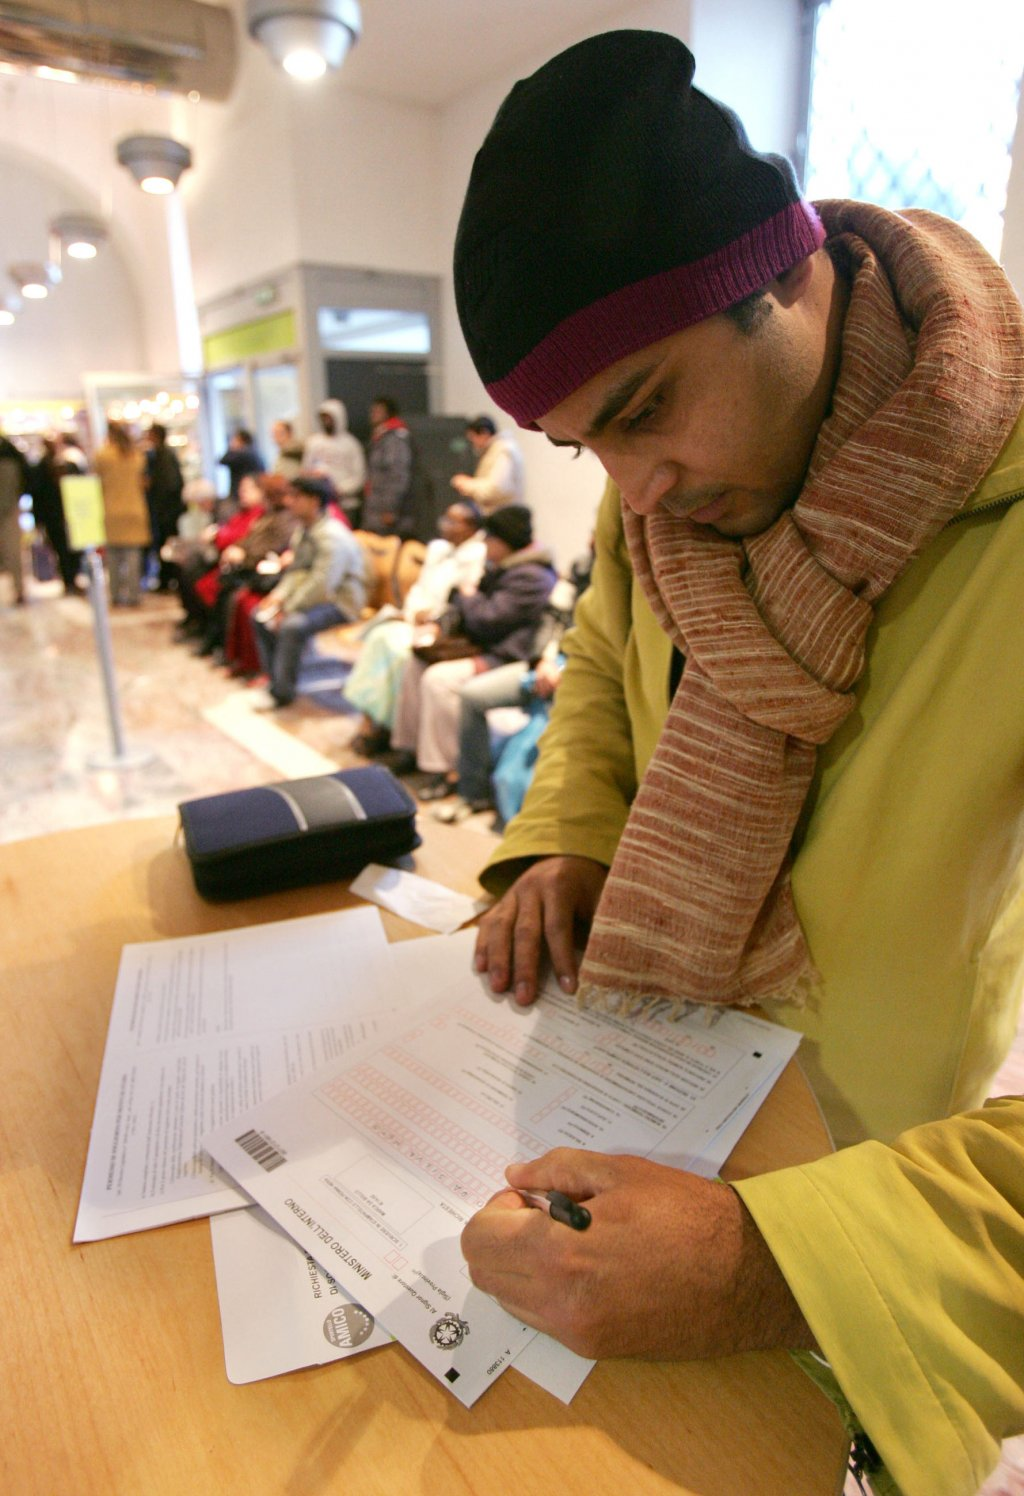 Foreign citizens filing stay permit requests at a Rome post office   Photo: ARCHIVE/ANSA/ALESSANDRO DI MEO